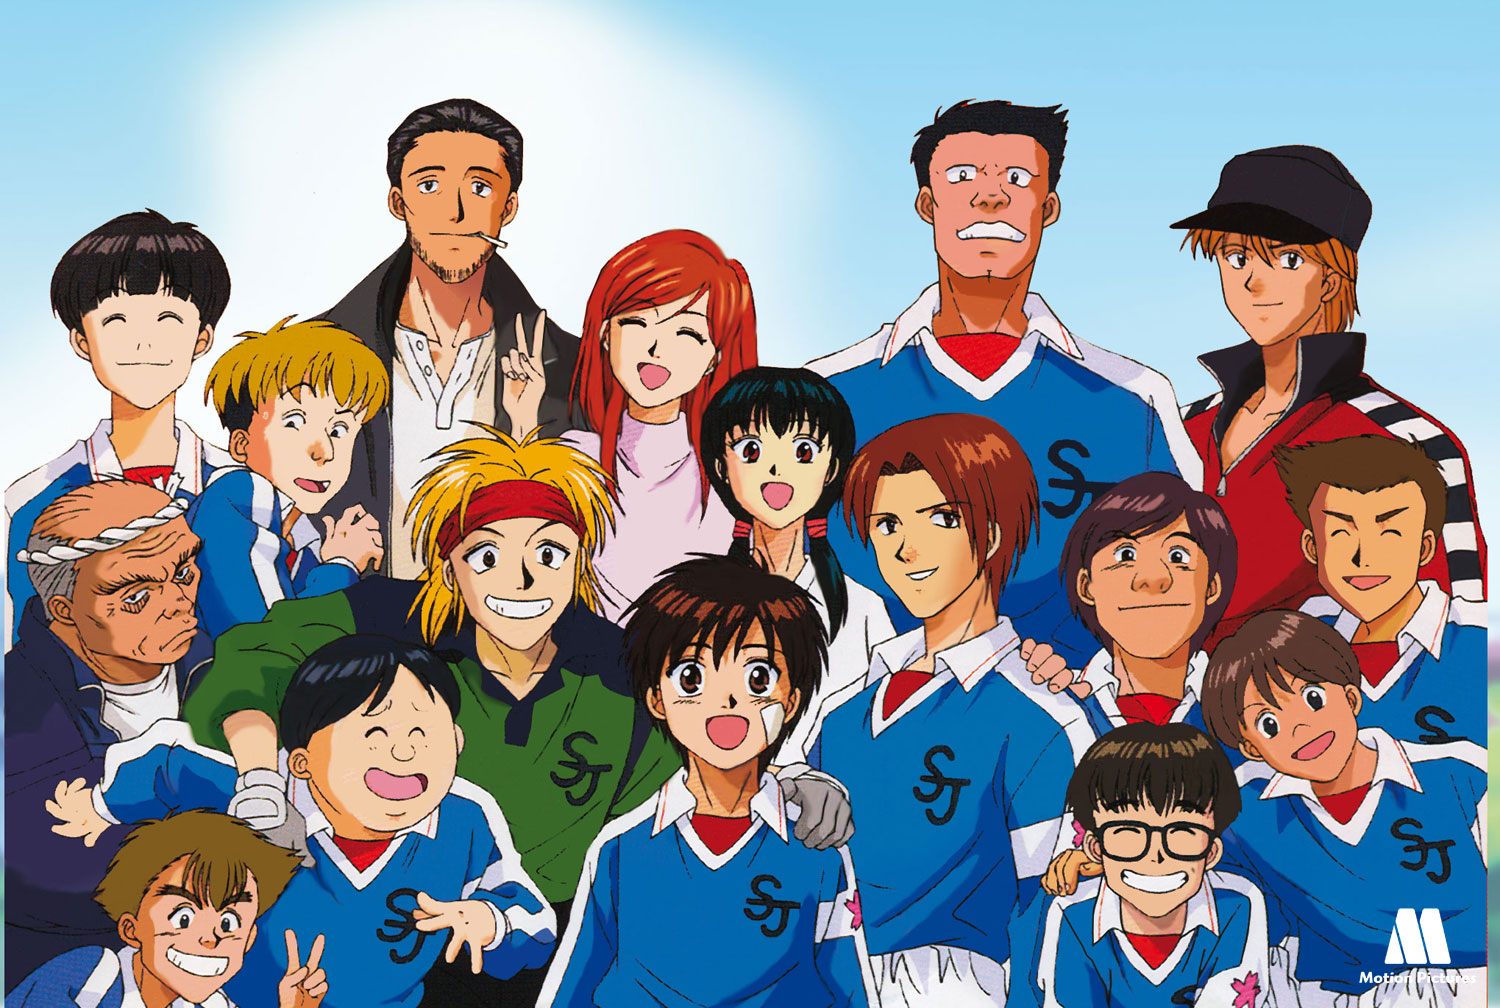 equipo, Dream Team, dibujos animados futbol, soccer anime japanese series